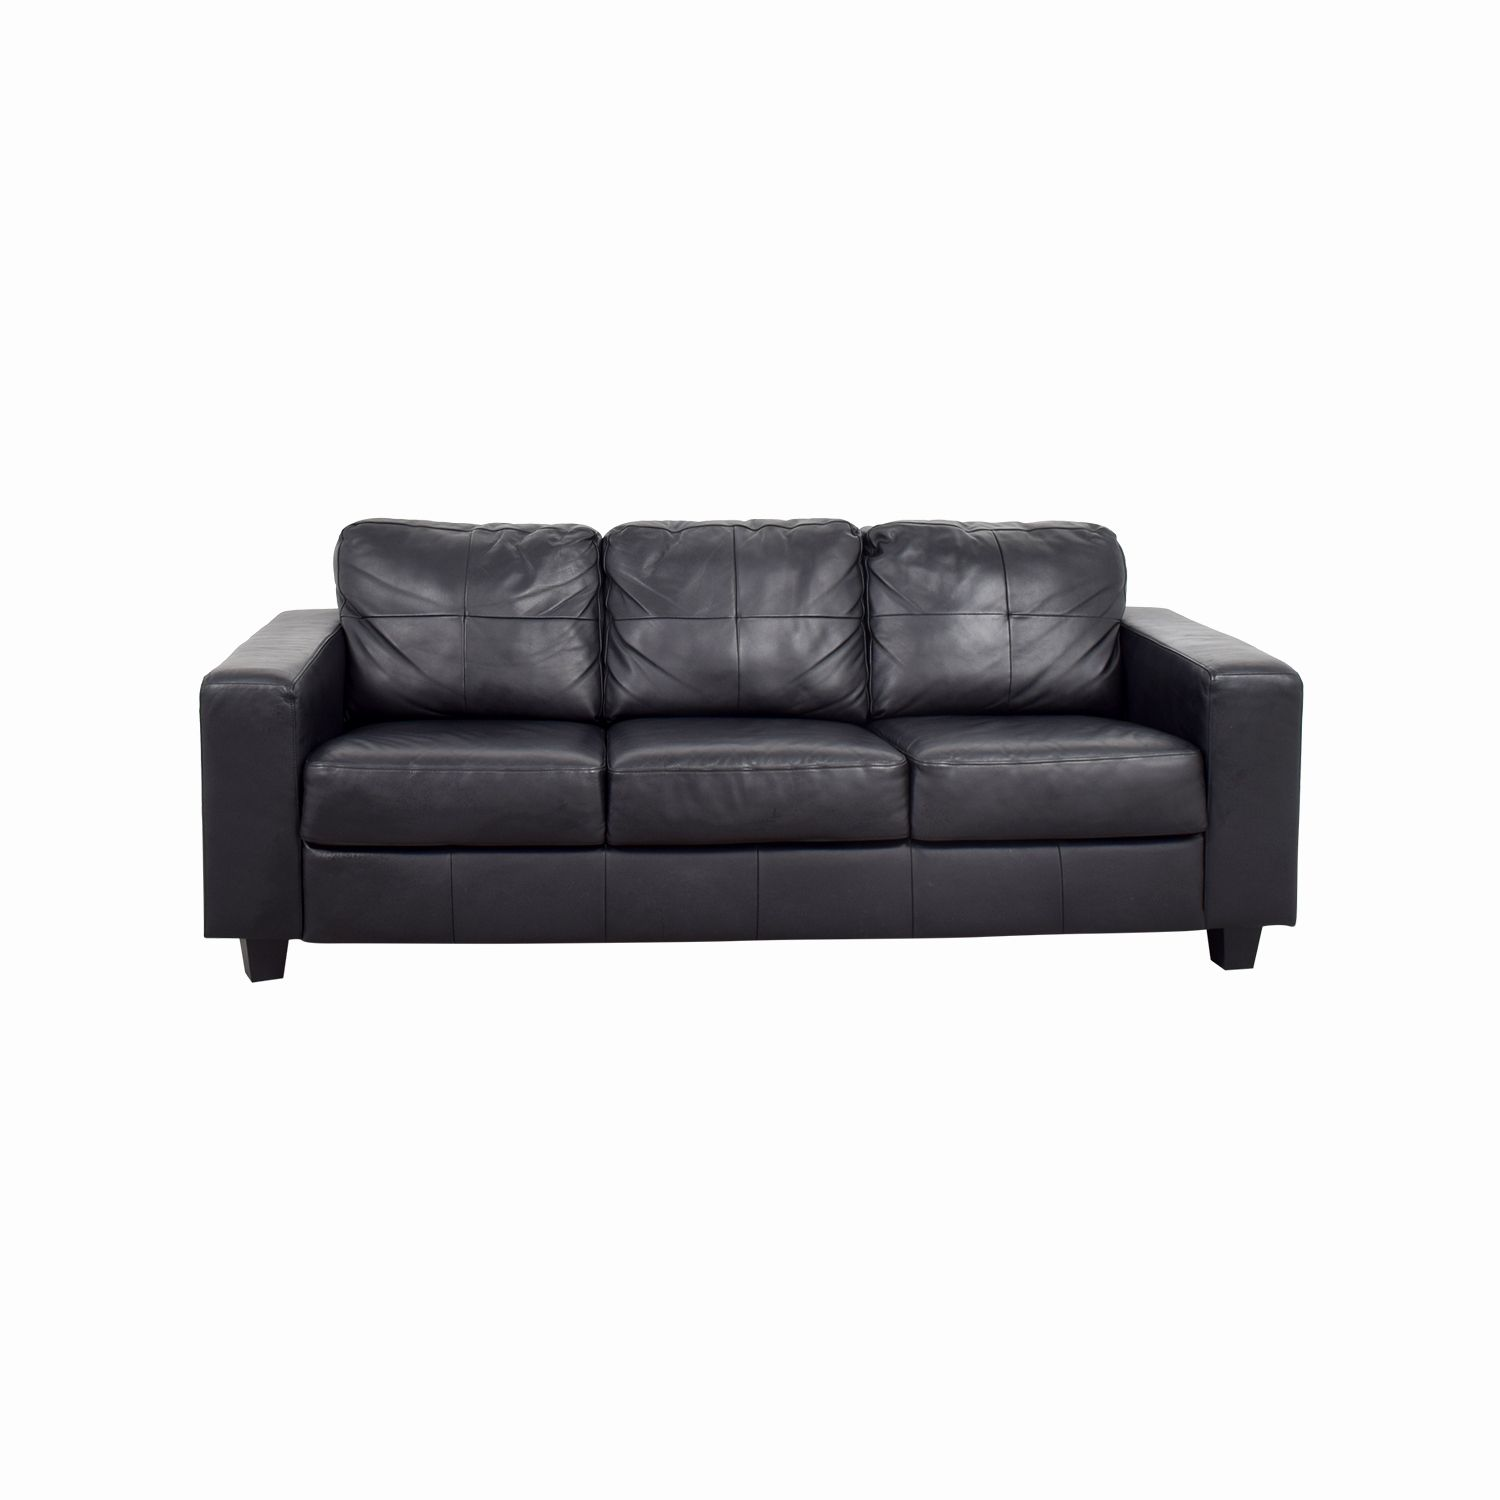 Beautiful Ikea Sofa Leather Pictures 44 Off Ikea Ikea Skogaby Black Leather Sofa Sofas Black Leather Sofa Bed Black Leather Couch Black Leather Sofas